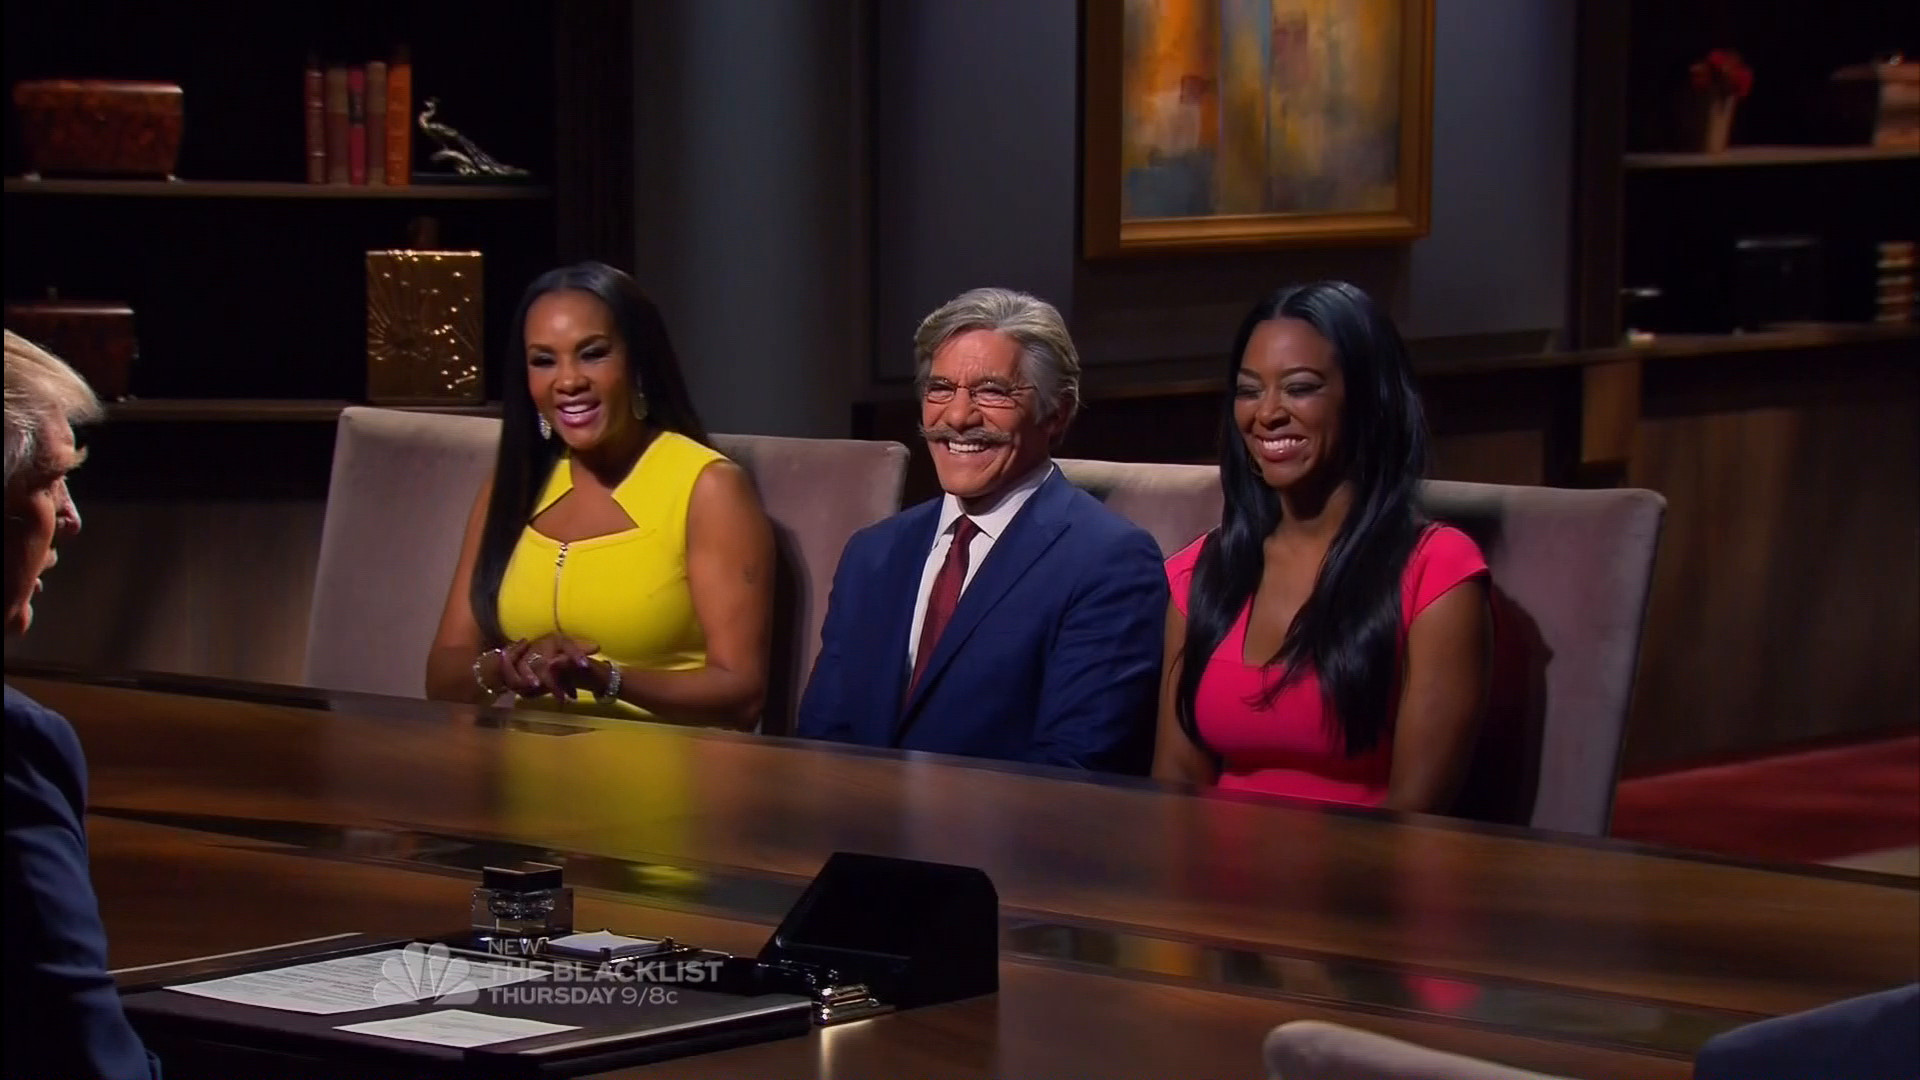 Geraldo Rivera with Kenya Moore and Vivica Fox in the Celebrity Apprentice Season 7 Boardroom